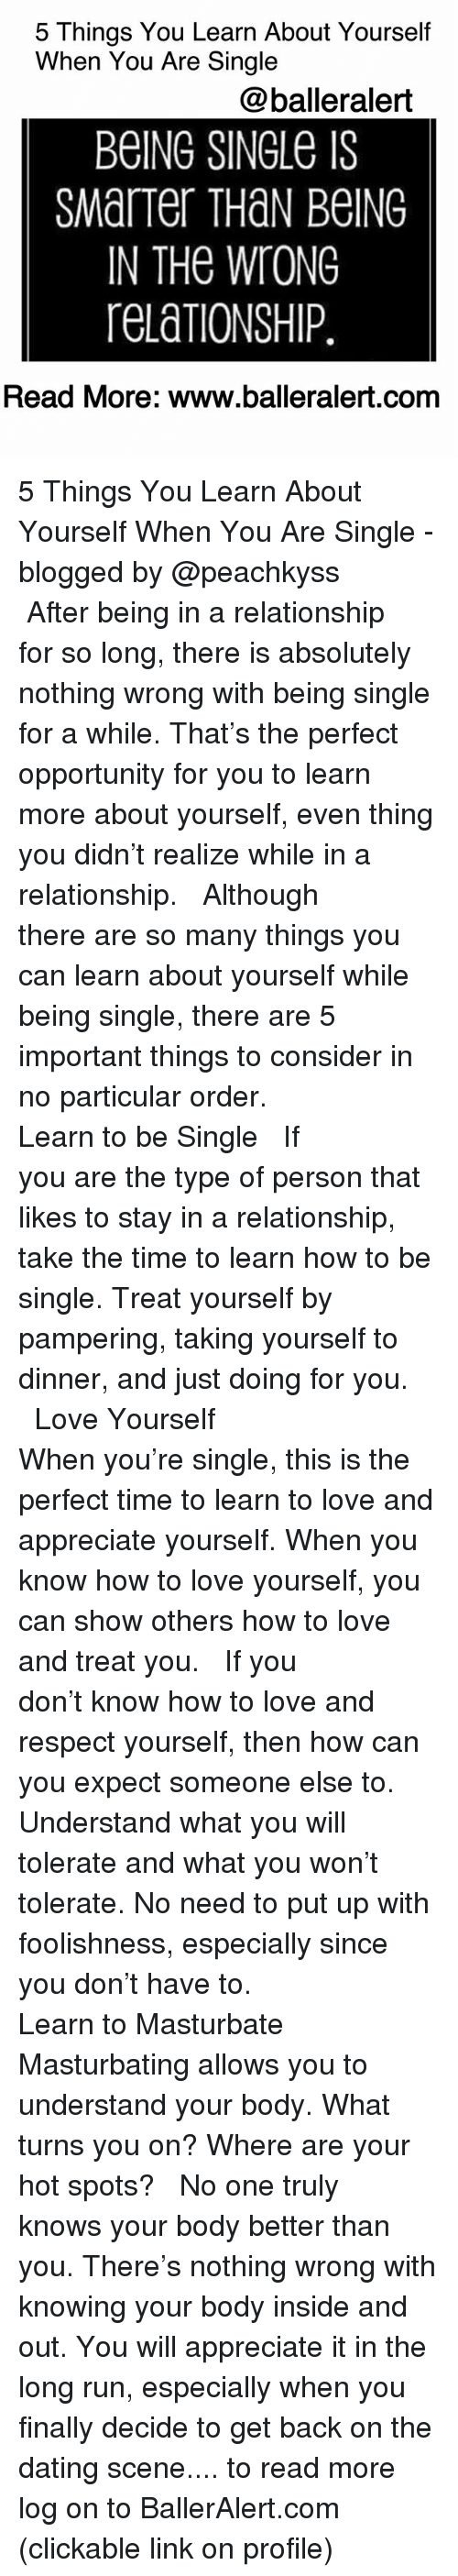 Dating, Love, and Memes: 5 Things You Learn About Yourself  When You Are Single  @balleralert  BeING SINGLe IS  SMarrer THaN BeING  IN THe WrONG  ELaTIONSHIP  Read More: www.balleralert.com 5 Things You Learn About Yourself When You Are Single -blogged by @peachkyss ⠀⠀⠀⠀⠀⠀ ⠀⠀⠀⠀⠀⠀ After being in a relationship for so long, there is absolutely nothing wrong with being single for a while. That's the perfect opportunity for you to learn more about yourself, even thing you didn't realize while in a relationship. ⠀⠀⠀⠀⠀⠀ ⠀⠀⠀⠀⠀⠀ Although there are so many things you can learn about yourself while being single, there are 5 important things to consider in no particular order. ⠀⠀⠀⠀⠀⠀ ⠀⠀⠀⠀⠀⠀ Learn to be Single ⠀⠀⠀⠀⠀⠀ ⠀⠀⠀⠀⠀⠀ If you are the type of person that likes to stay in a relationship, take the time to learn how to be single. Treat yourself by pampering, taking yourself to dinner, and just doing for you. ⠀⠀⠀⠀⠀⠀ ⠀⠀⠀⠀⠀⠀ Love Yourself ⠀⠀⠀⠀⠀⠀ ⠀⠀⠀⠀⠀⠀ When you're single, this is the perfect time to learn to love and appreciate yourself. When you know how to love yourself, you can show others how to love and treat you. ⠀⠀⠀⠀⠀⠀ ⠀⠀⠀⠀⠀⠀ If you don't know how to love and respect yourself, then how can you expect someone else to. Understand what you will tolerate and what you won't tolerate. No need to put up with foolishness, especially since you don't have to. ⠀⠀⠀⠀⠀⠀ ⠀⠀⠀⠀⠀⠀ Learn to Masturbate ⠀⠀⠀⠀⠀⠀ ⠀⠀⠀⠀⠀⠀ Masturbating allows you to understand your body. What turns you on? Where are your hot spots? ⠀⠀⠀⠀⠀⠀ ⠀⠀⠀⠀⠀⠀ No one truly knows your body better than you. There's nothing wrong with knowing your body inside and out. You will appreciate it in the long run, especially when you finally decide to get back on the dating scene.... to read more log on to BallerAlert.com (clickable link on profile)